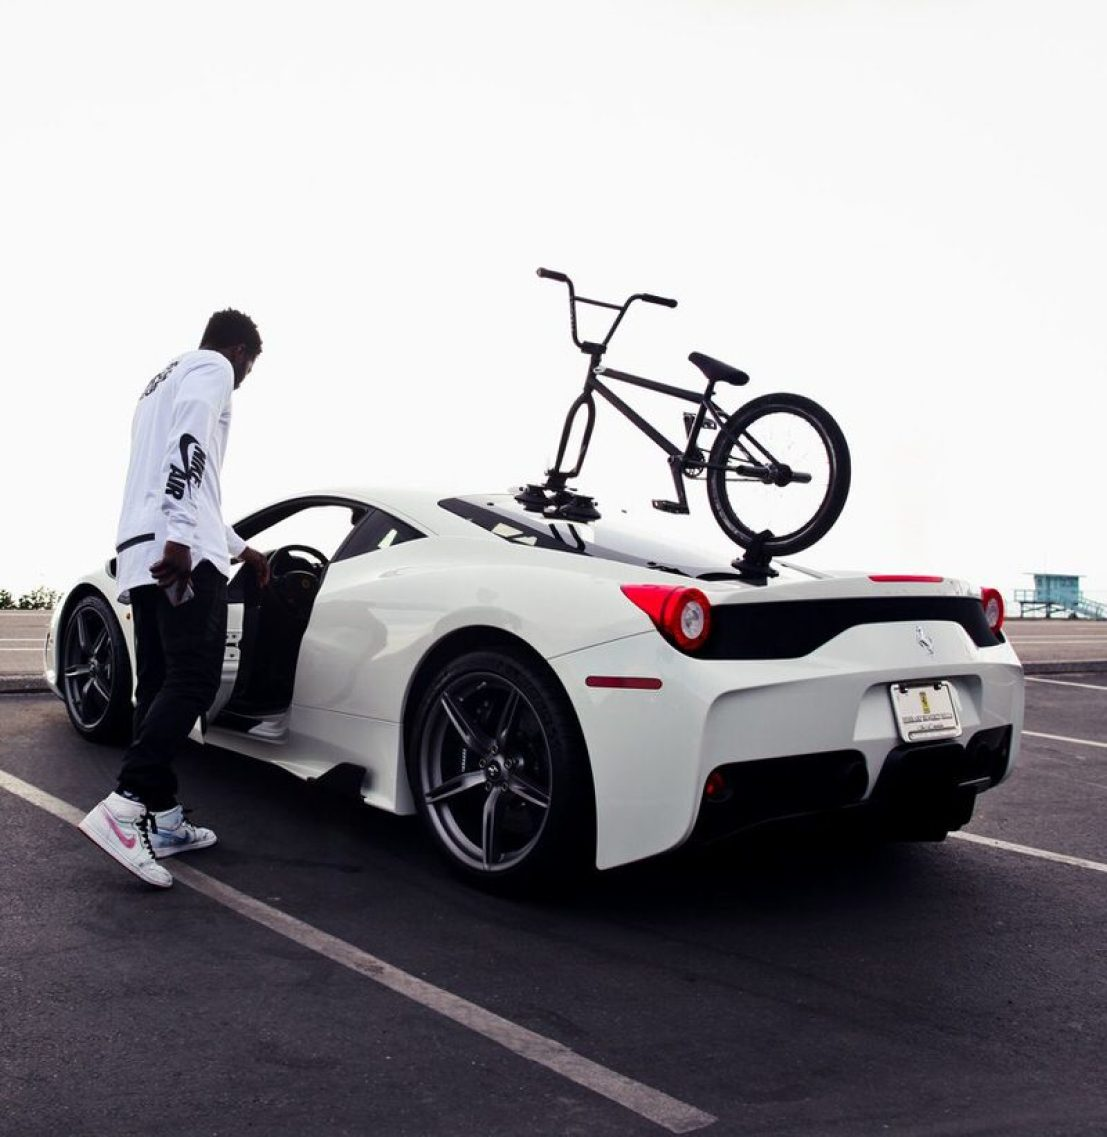 Nigel Sylvester wearing the Nike SB Jordan 1 x Lance Mountain. Roof-rack not included.